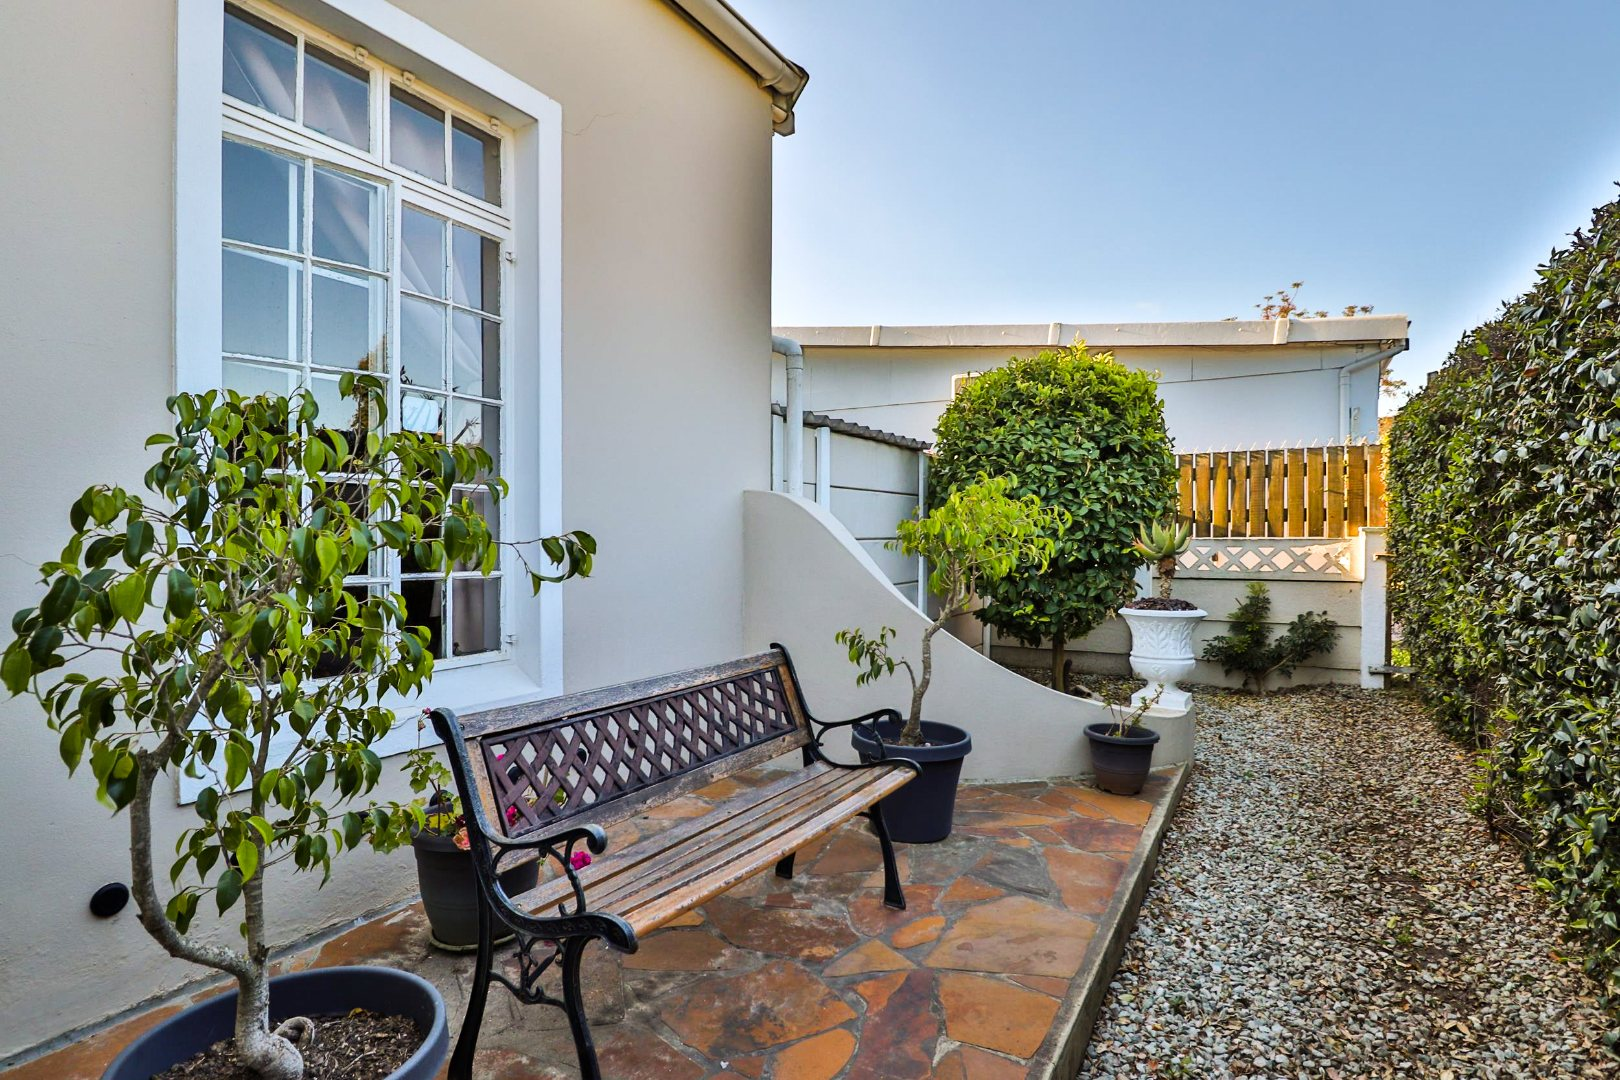 7 Bedroom House For Sale in Knysna Central